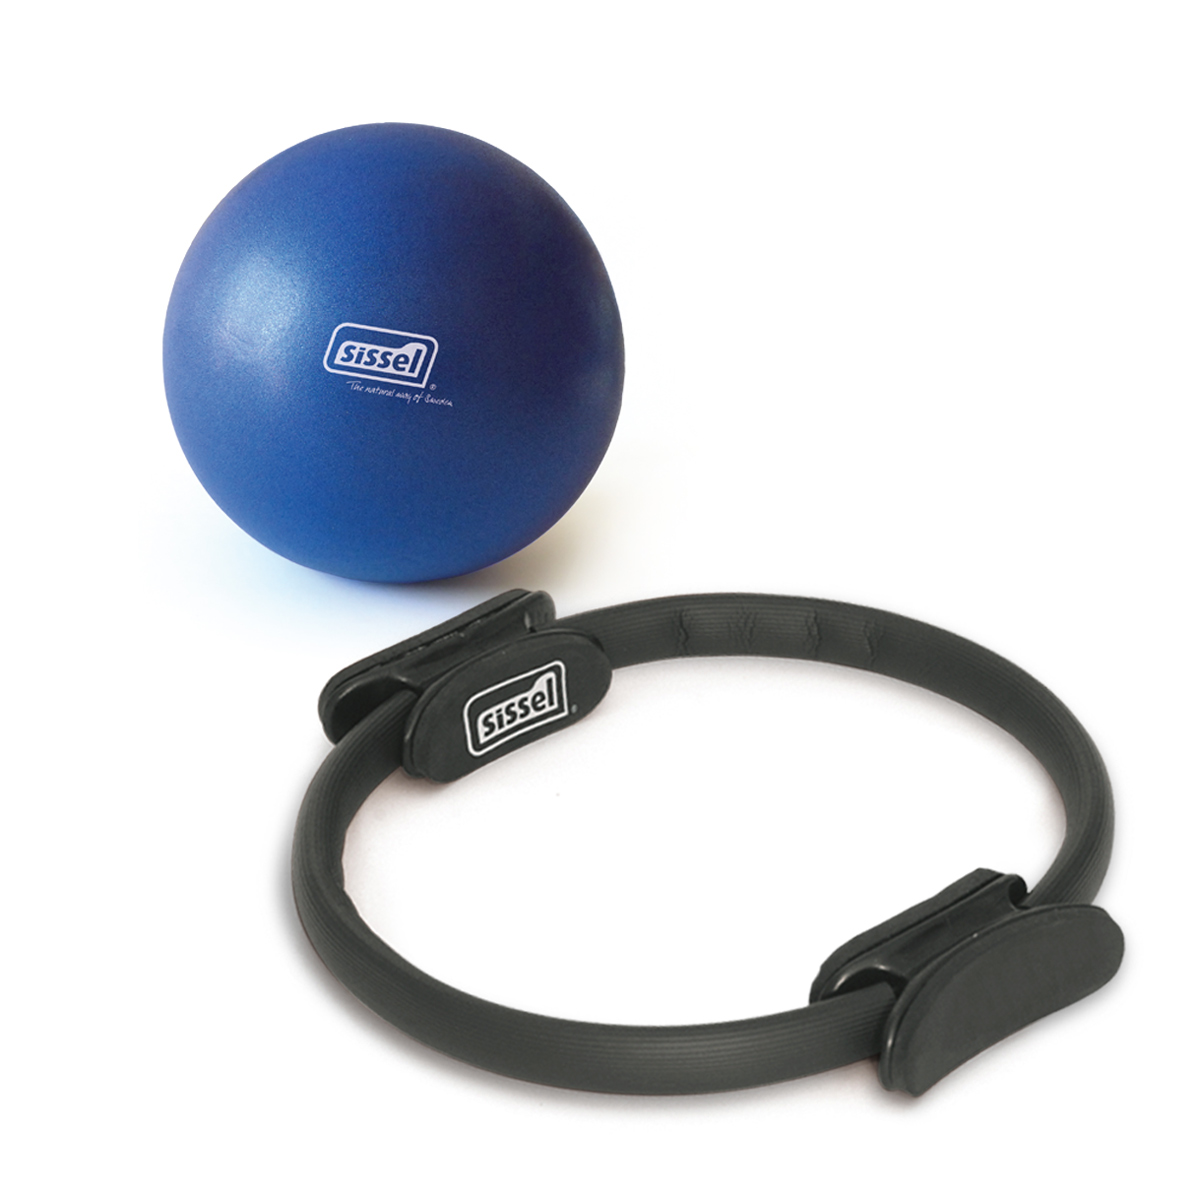 KIT PILATES CASA n°5: Soft Ball e Circle